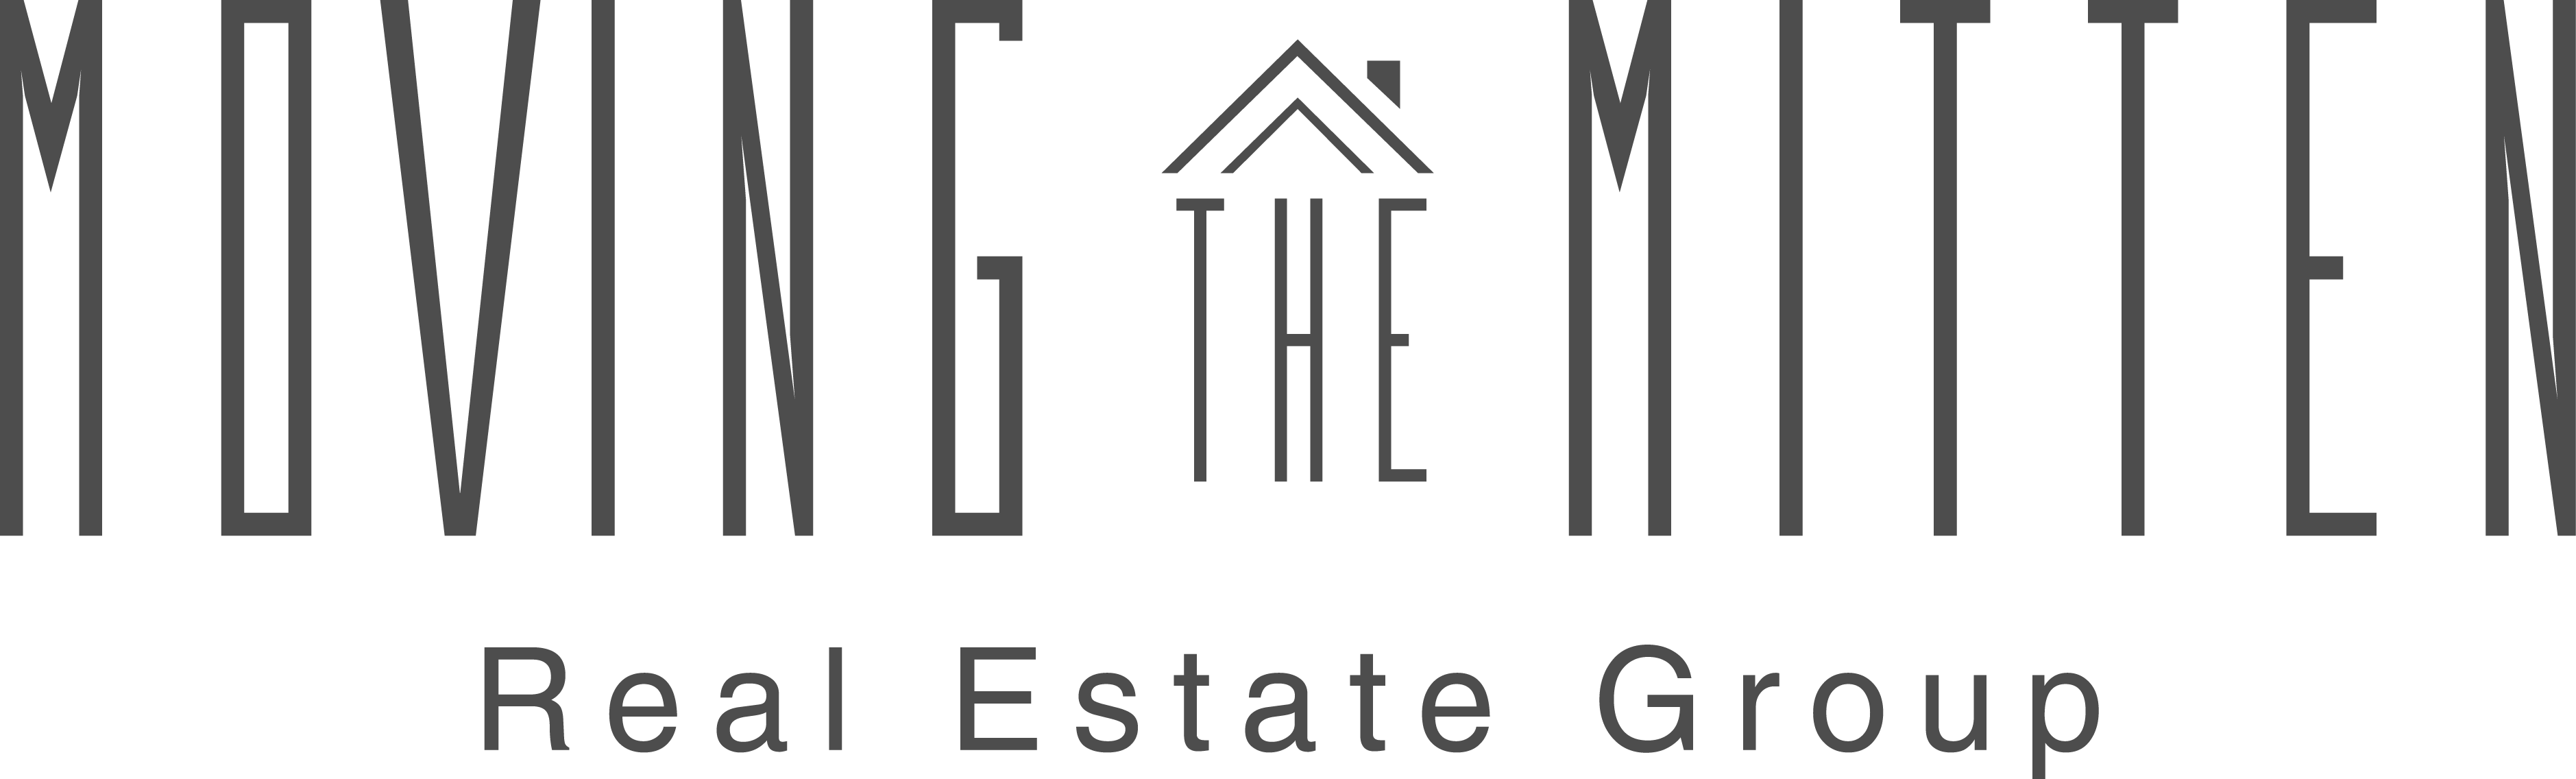 Moving The Mitten Real Estate Group logo